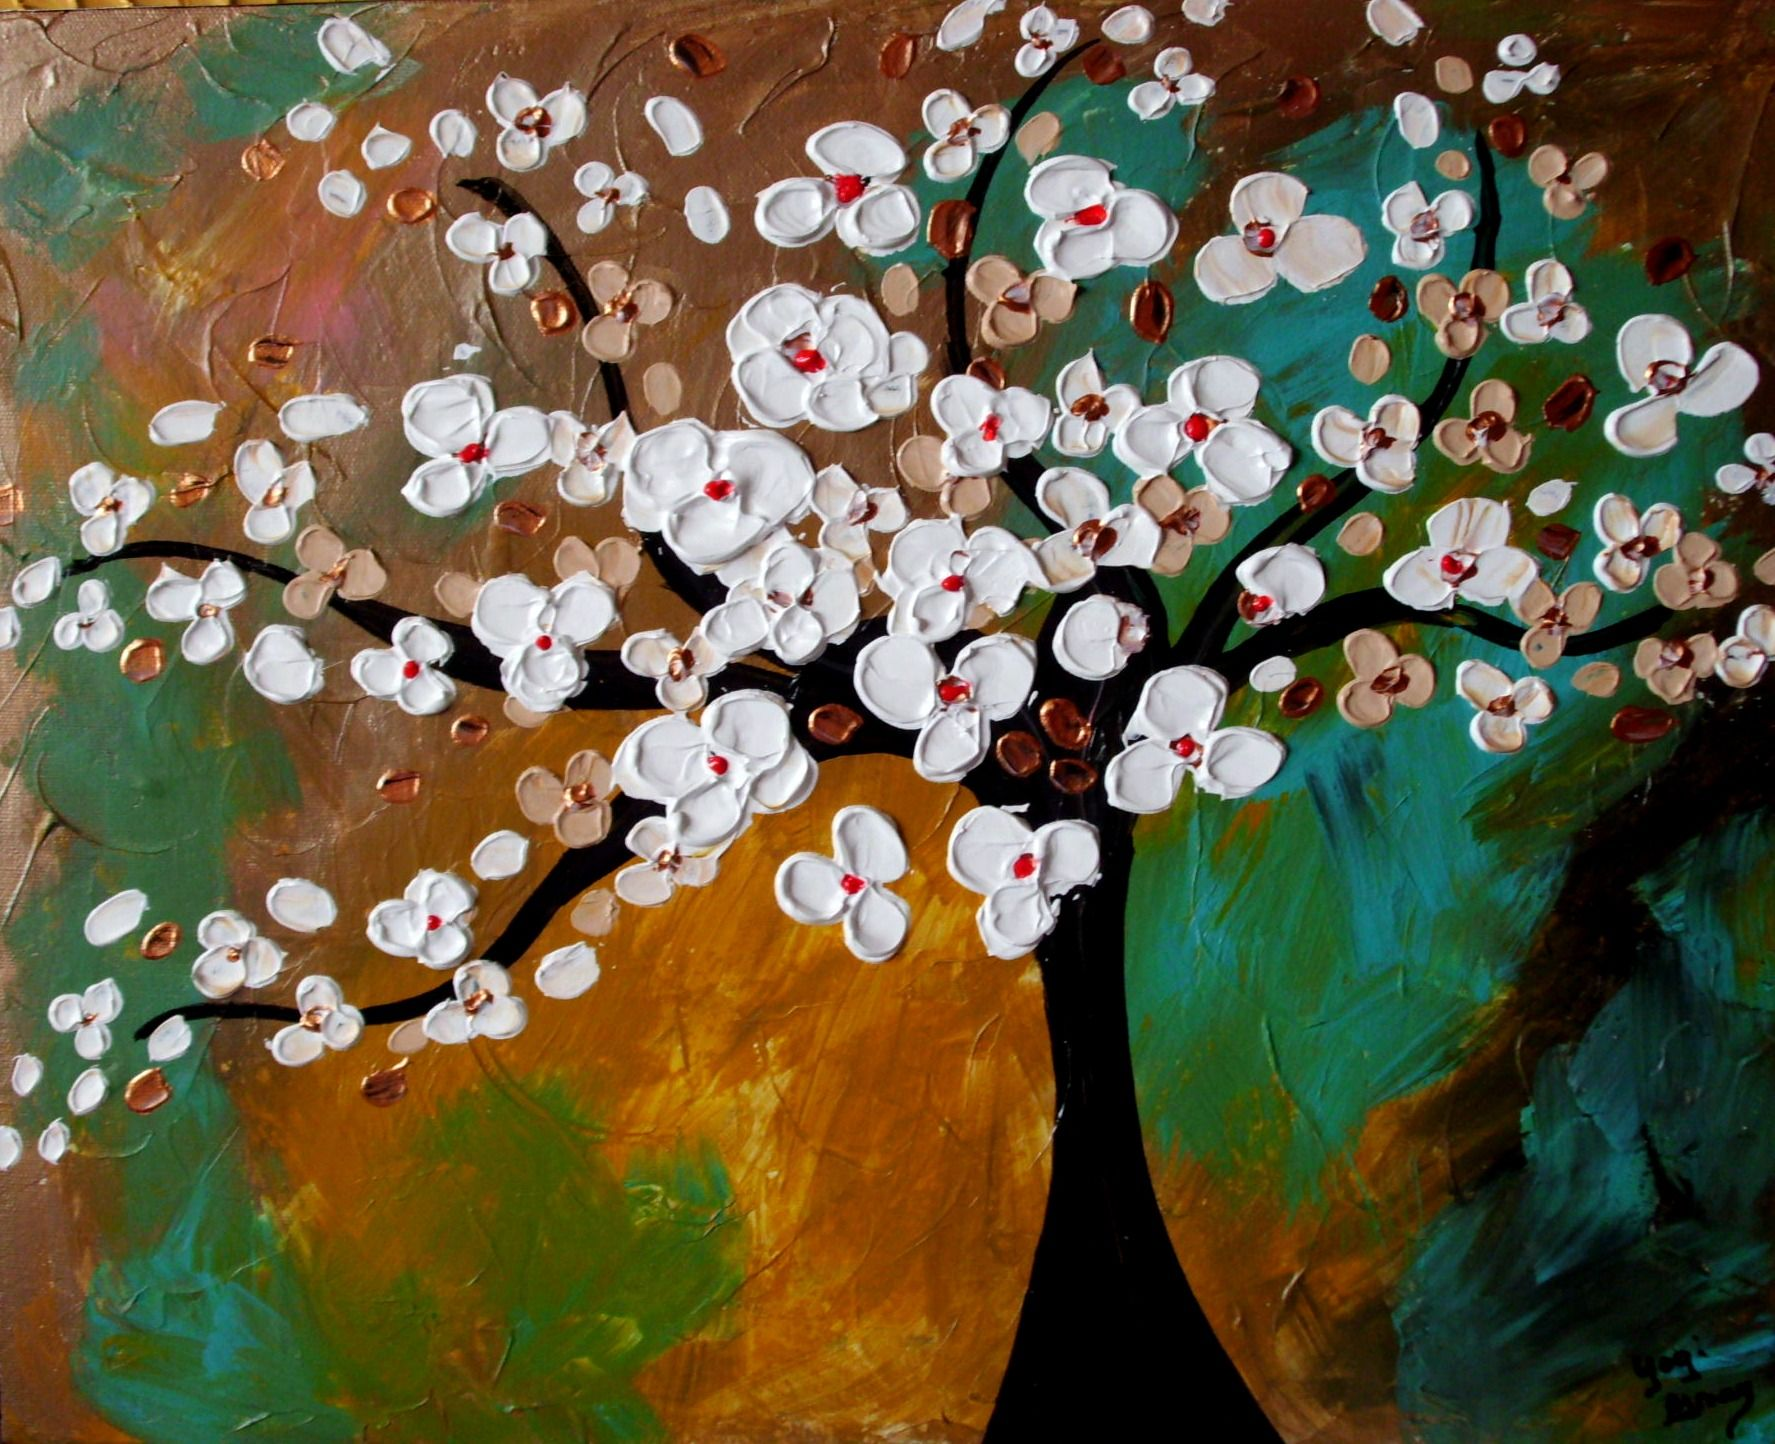 Albero Con Fiori Bianchi pin by charm accents on newest paintings | tree art, tree